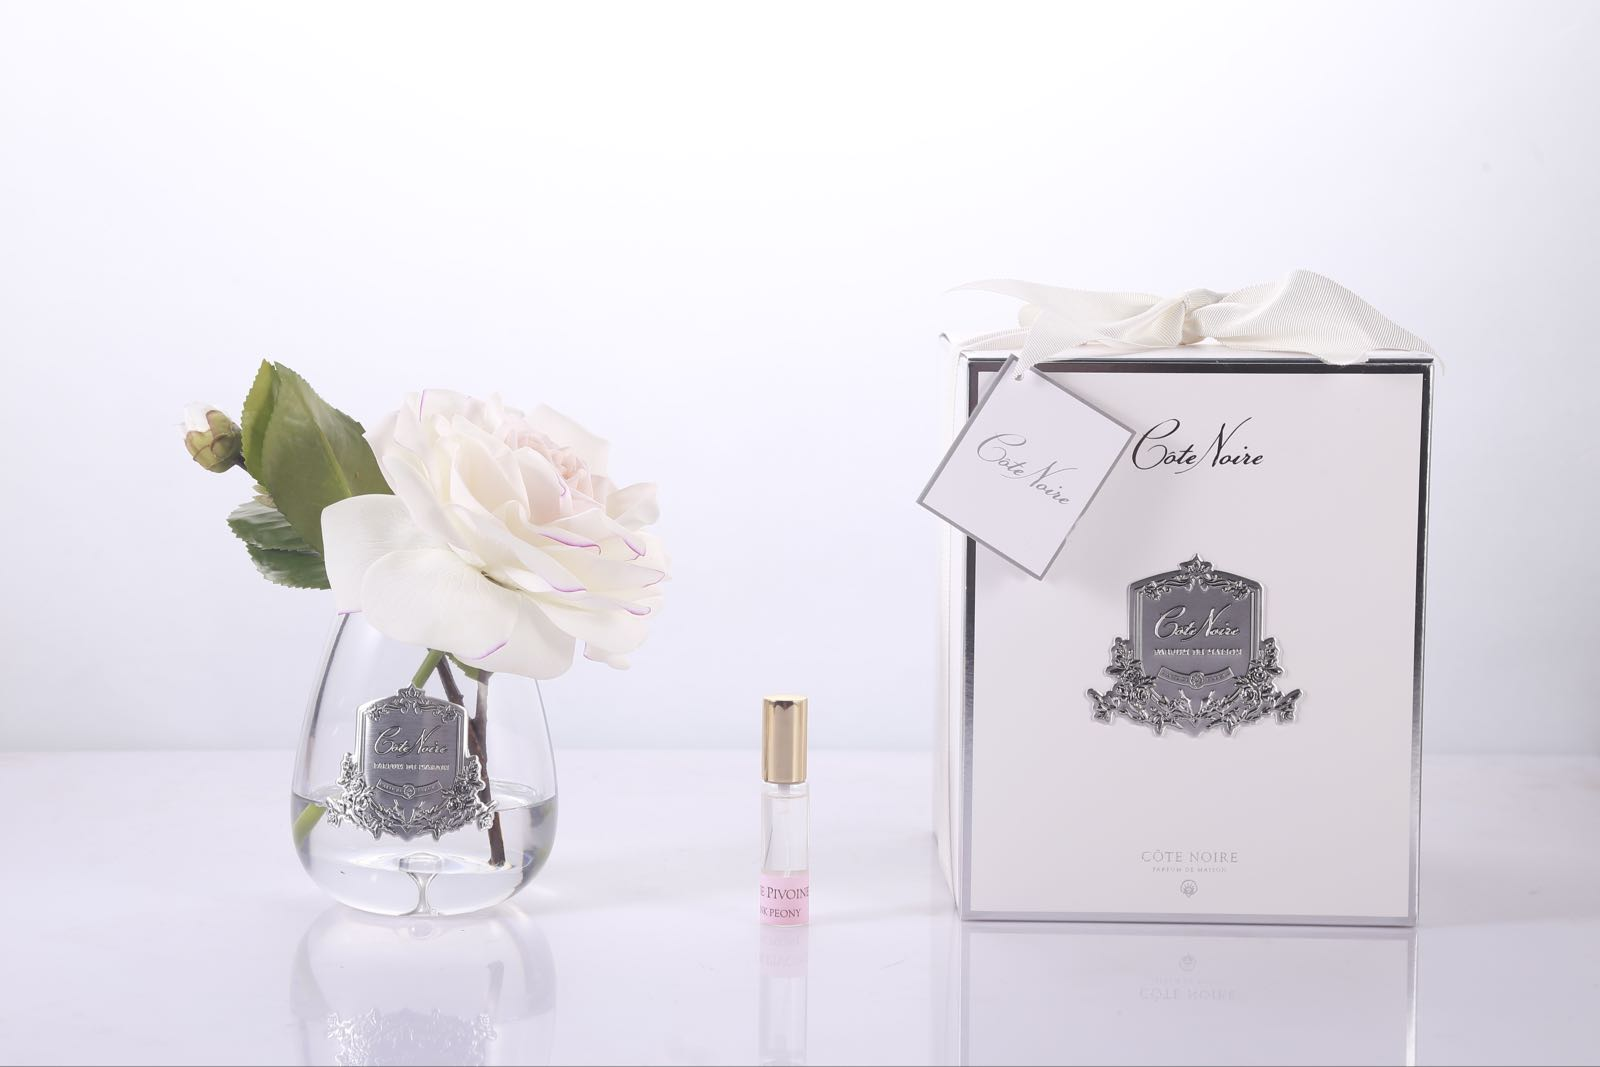 Cote noire fragranced blush pink tea rose with fragrance and gift box